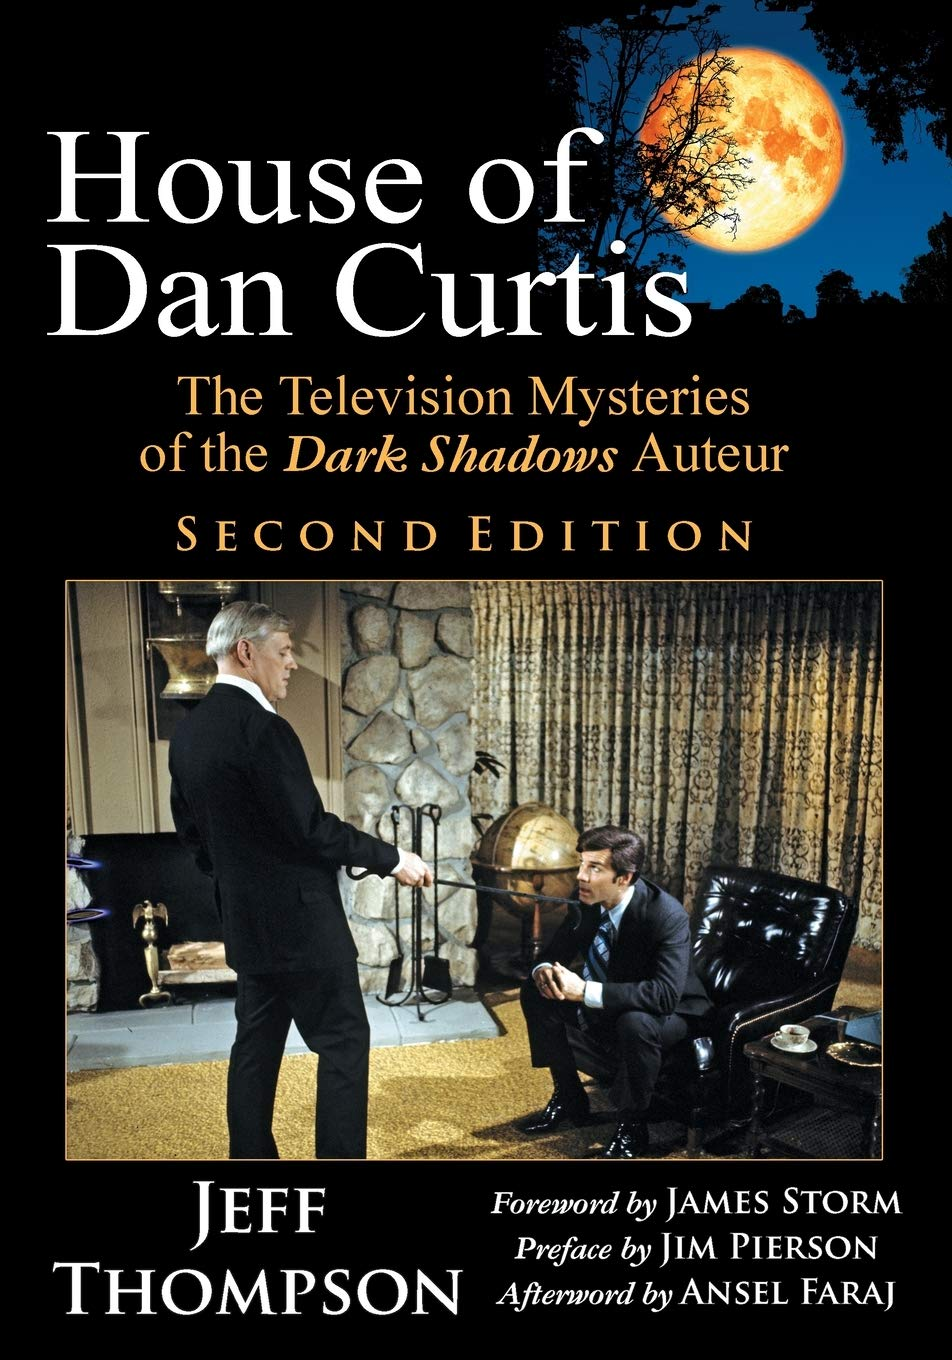 House of Dan Curtis, Second Edition: The Television Mysteries of the Dark Shadows Auteur